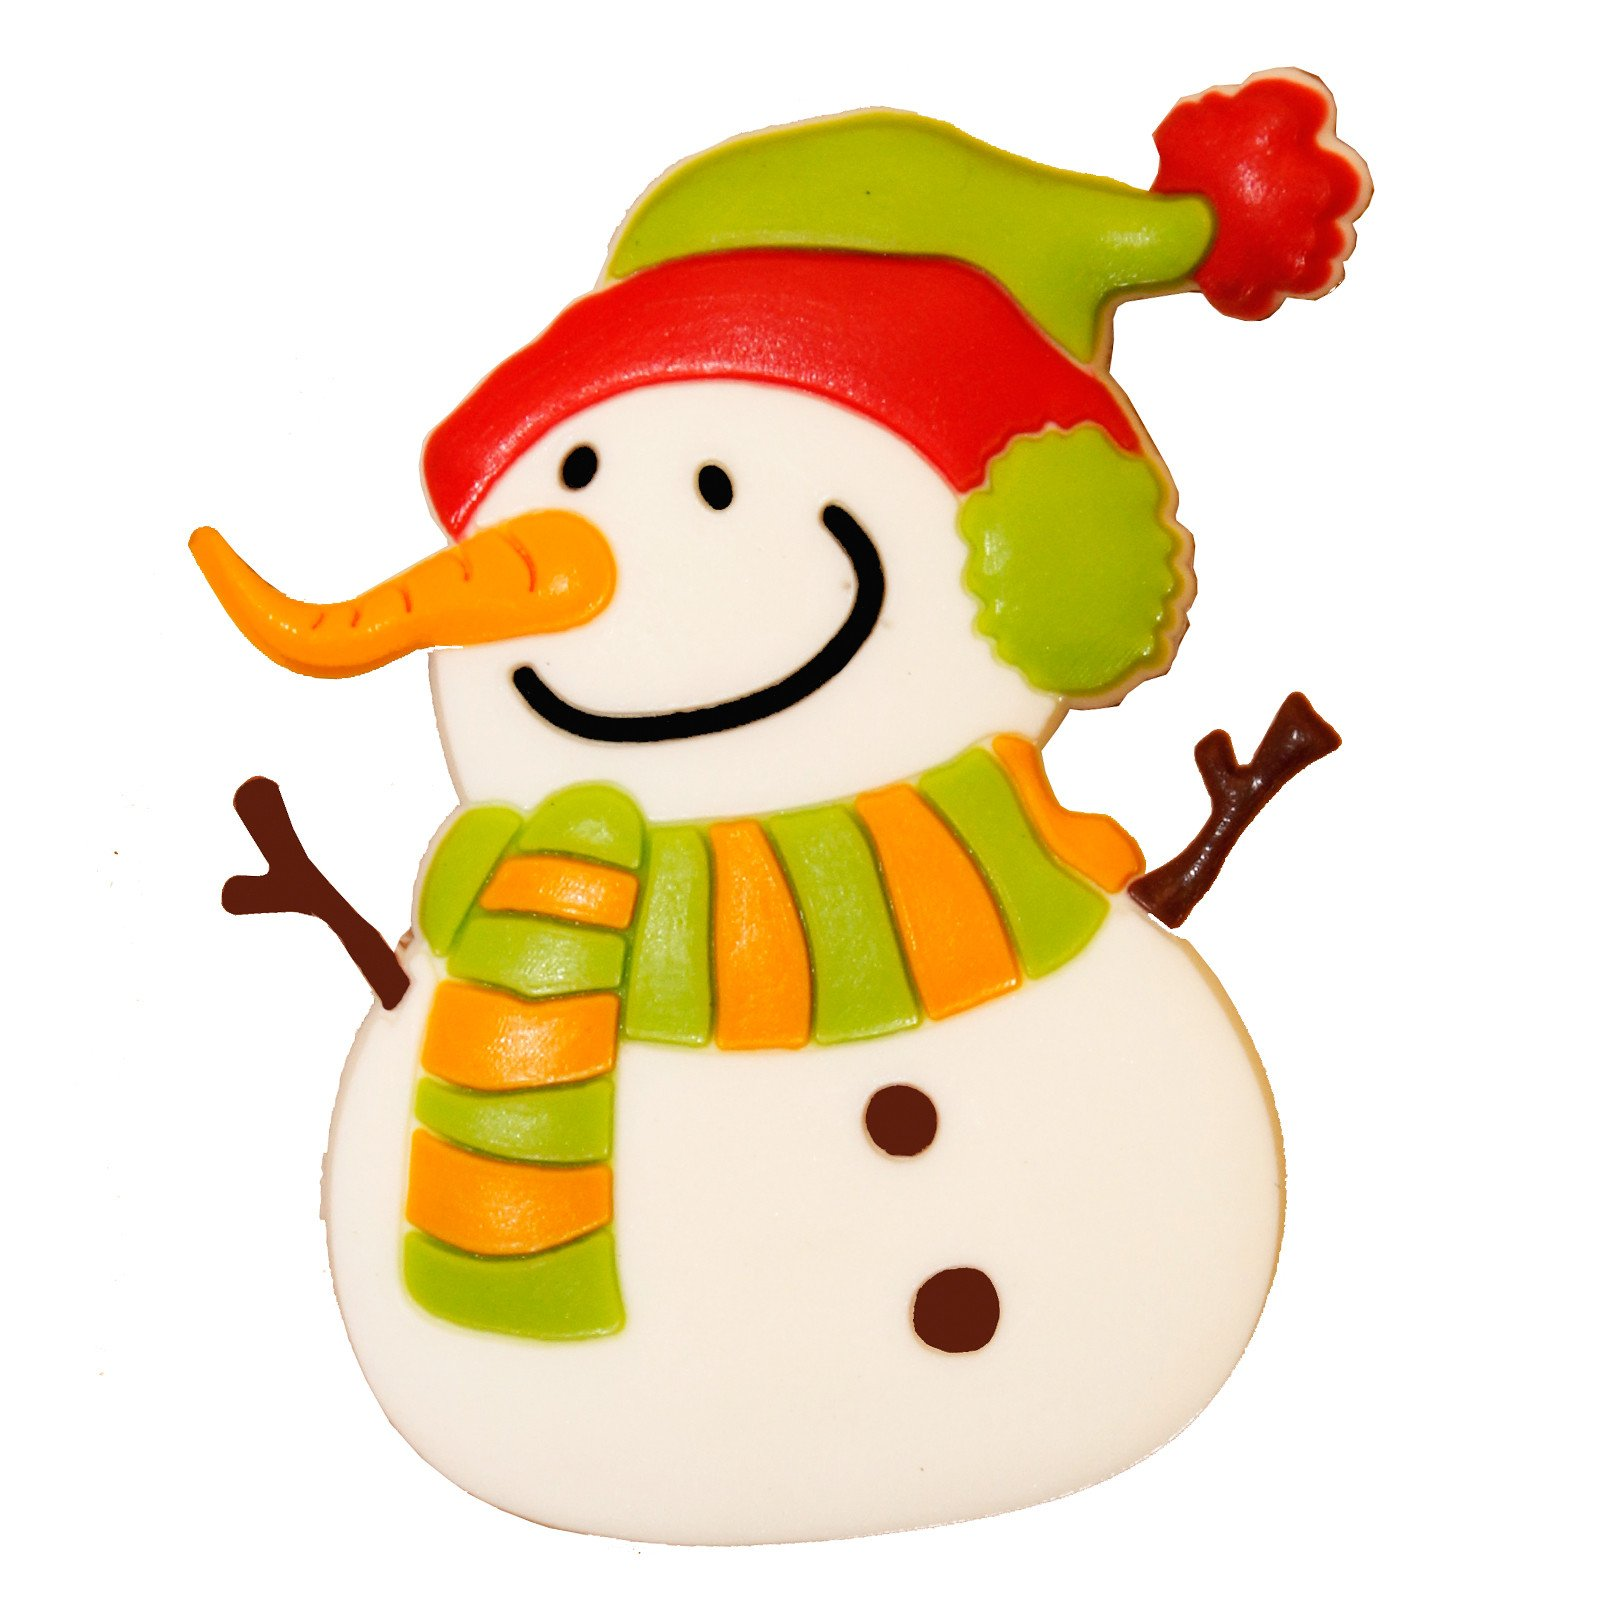 Snowman with fridge magnet. Carrot clipart carrot nose